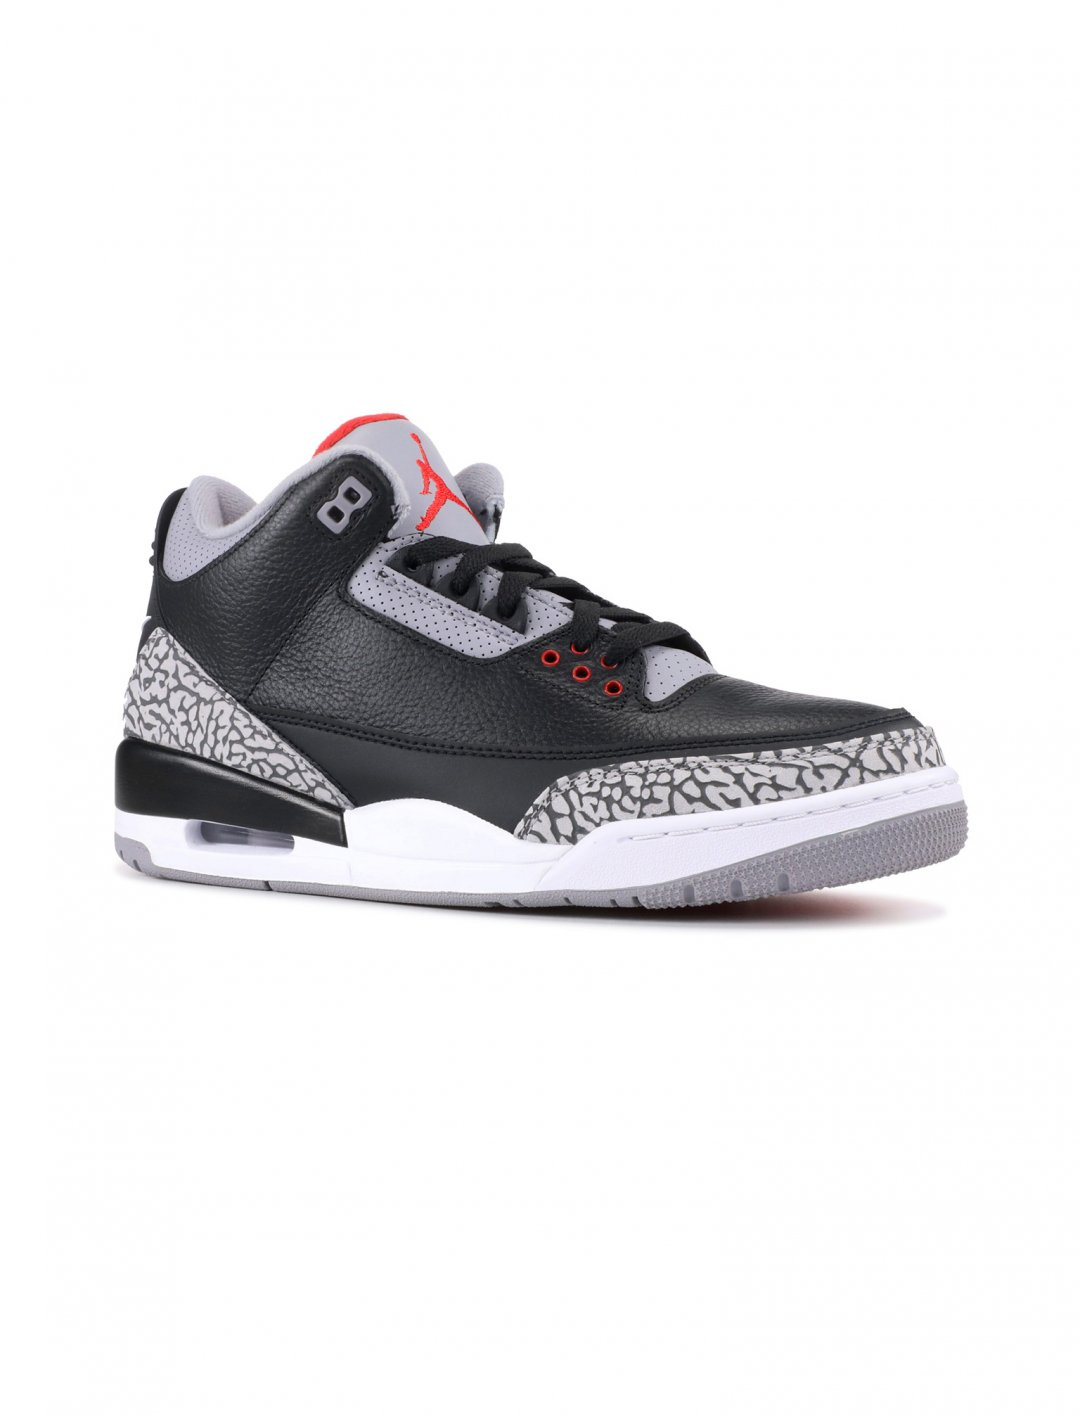 "Air Jordan 3 'Black Cement' {""id"":12,""product_section_id"":1,""name"":""Shoes"",""order"":12} Jordan"